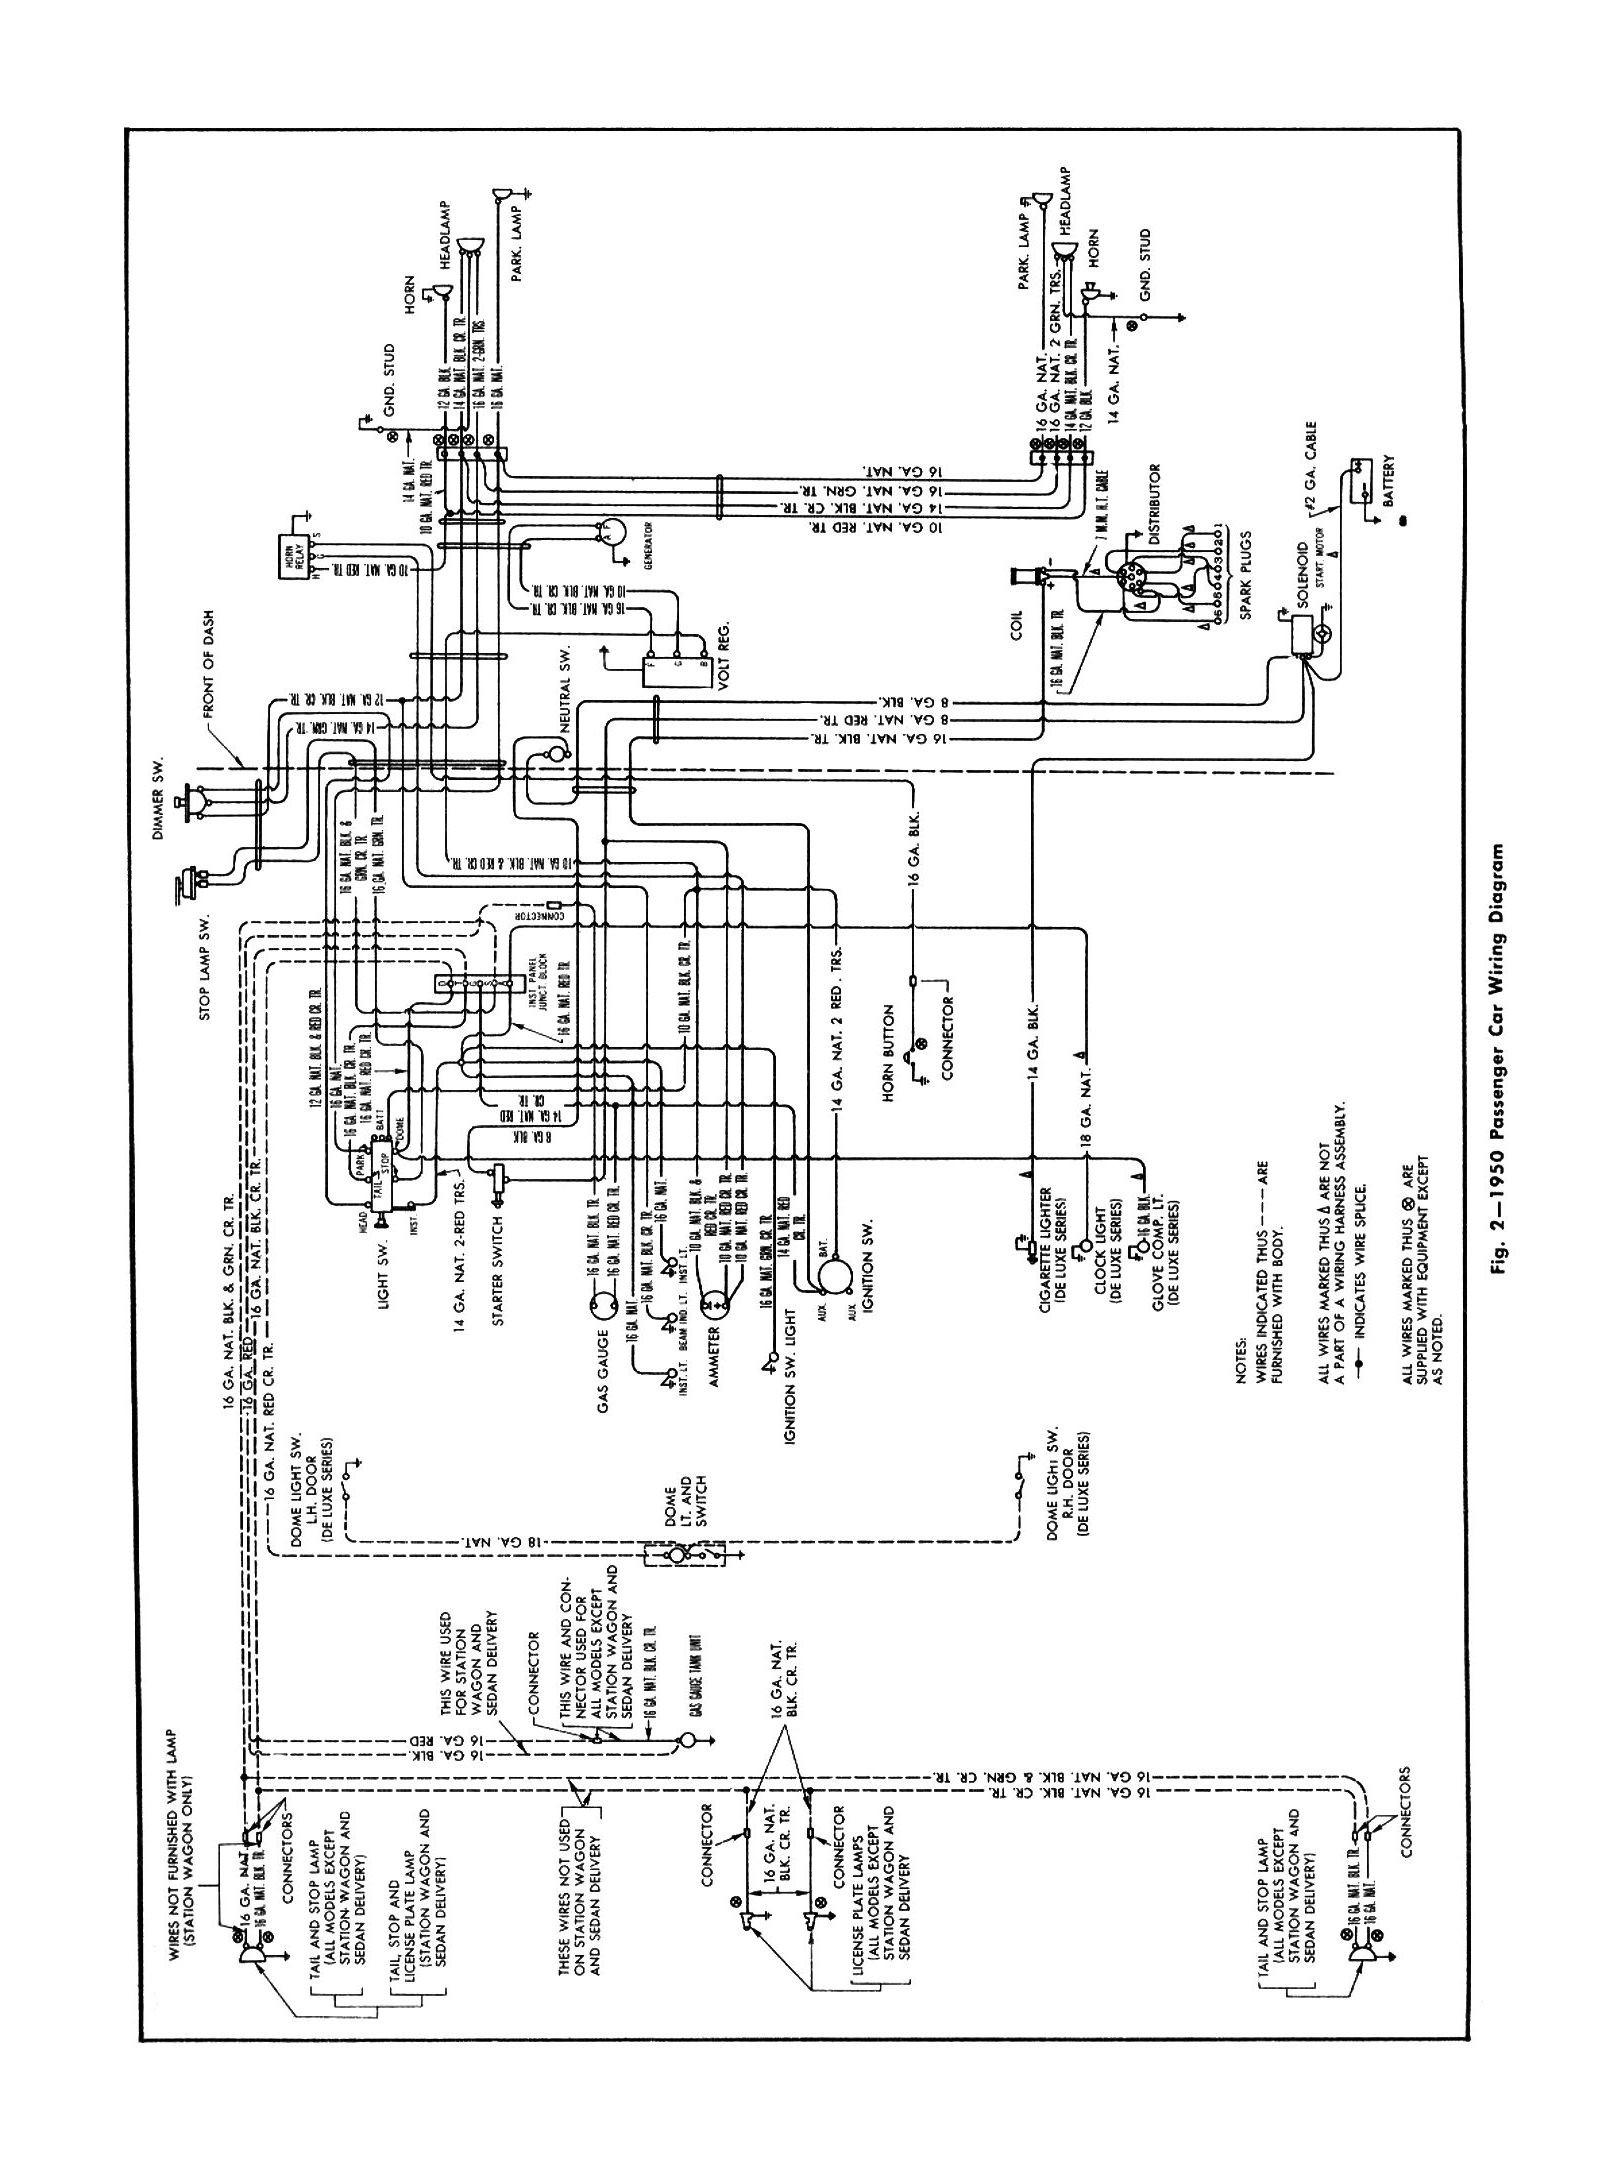 1950 Studebaker Wiring Diagram Libraries 04 Pacifica Free Picture Schematic Chrysler Todays1950